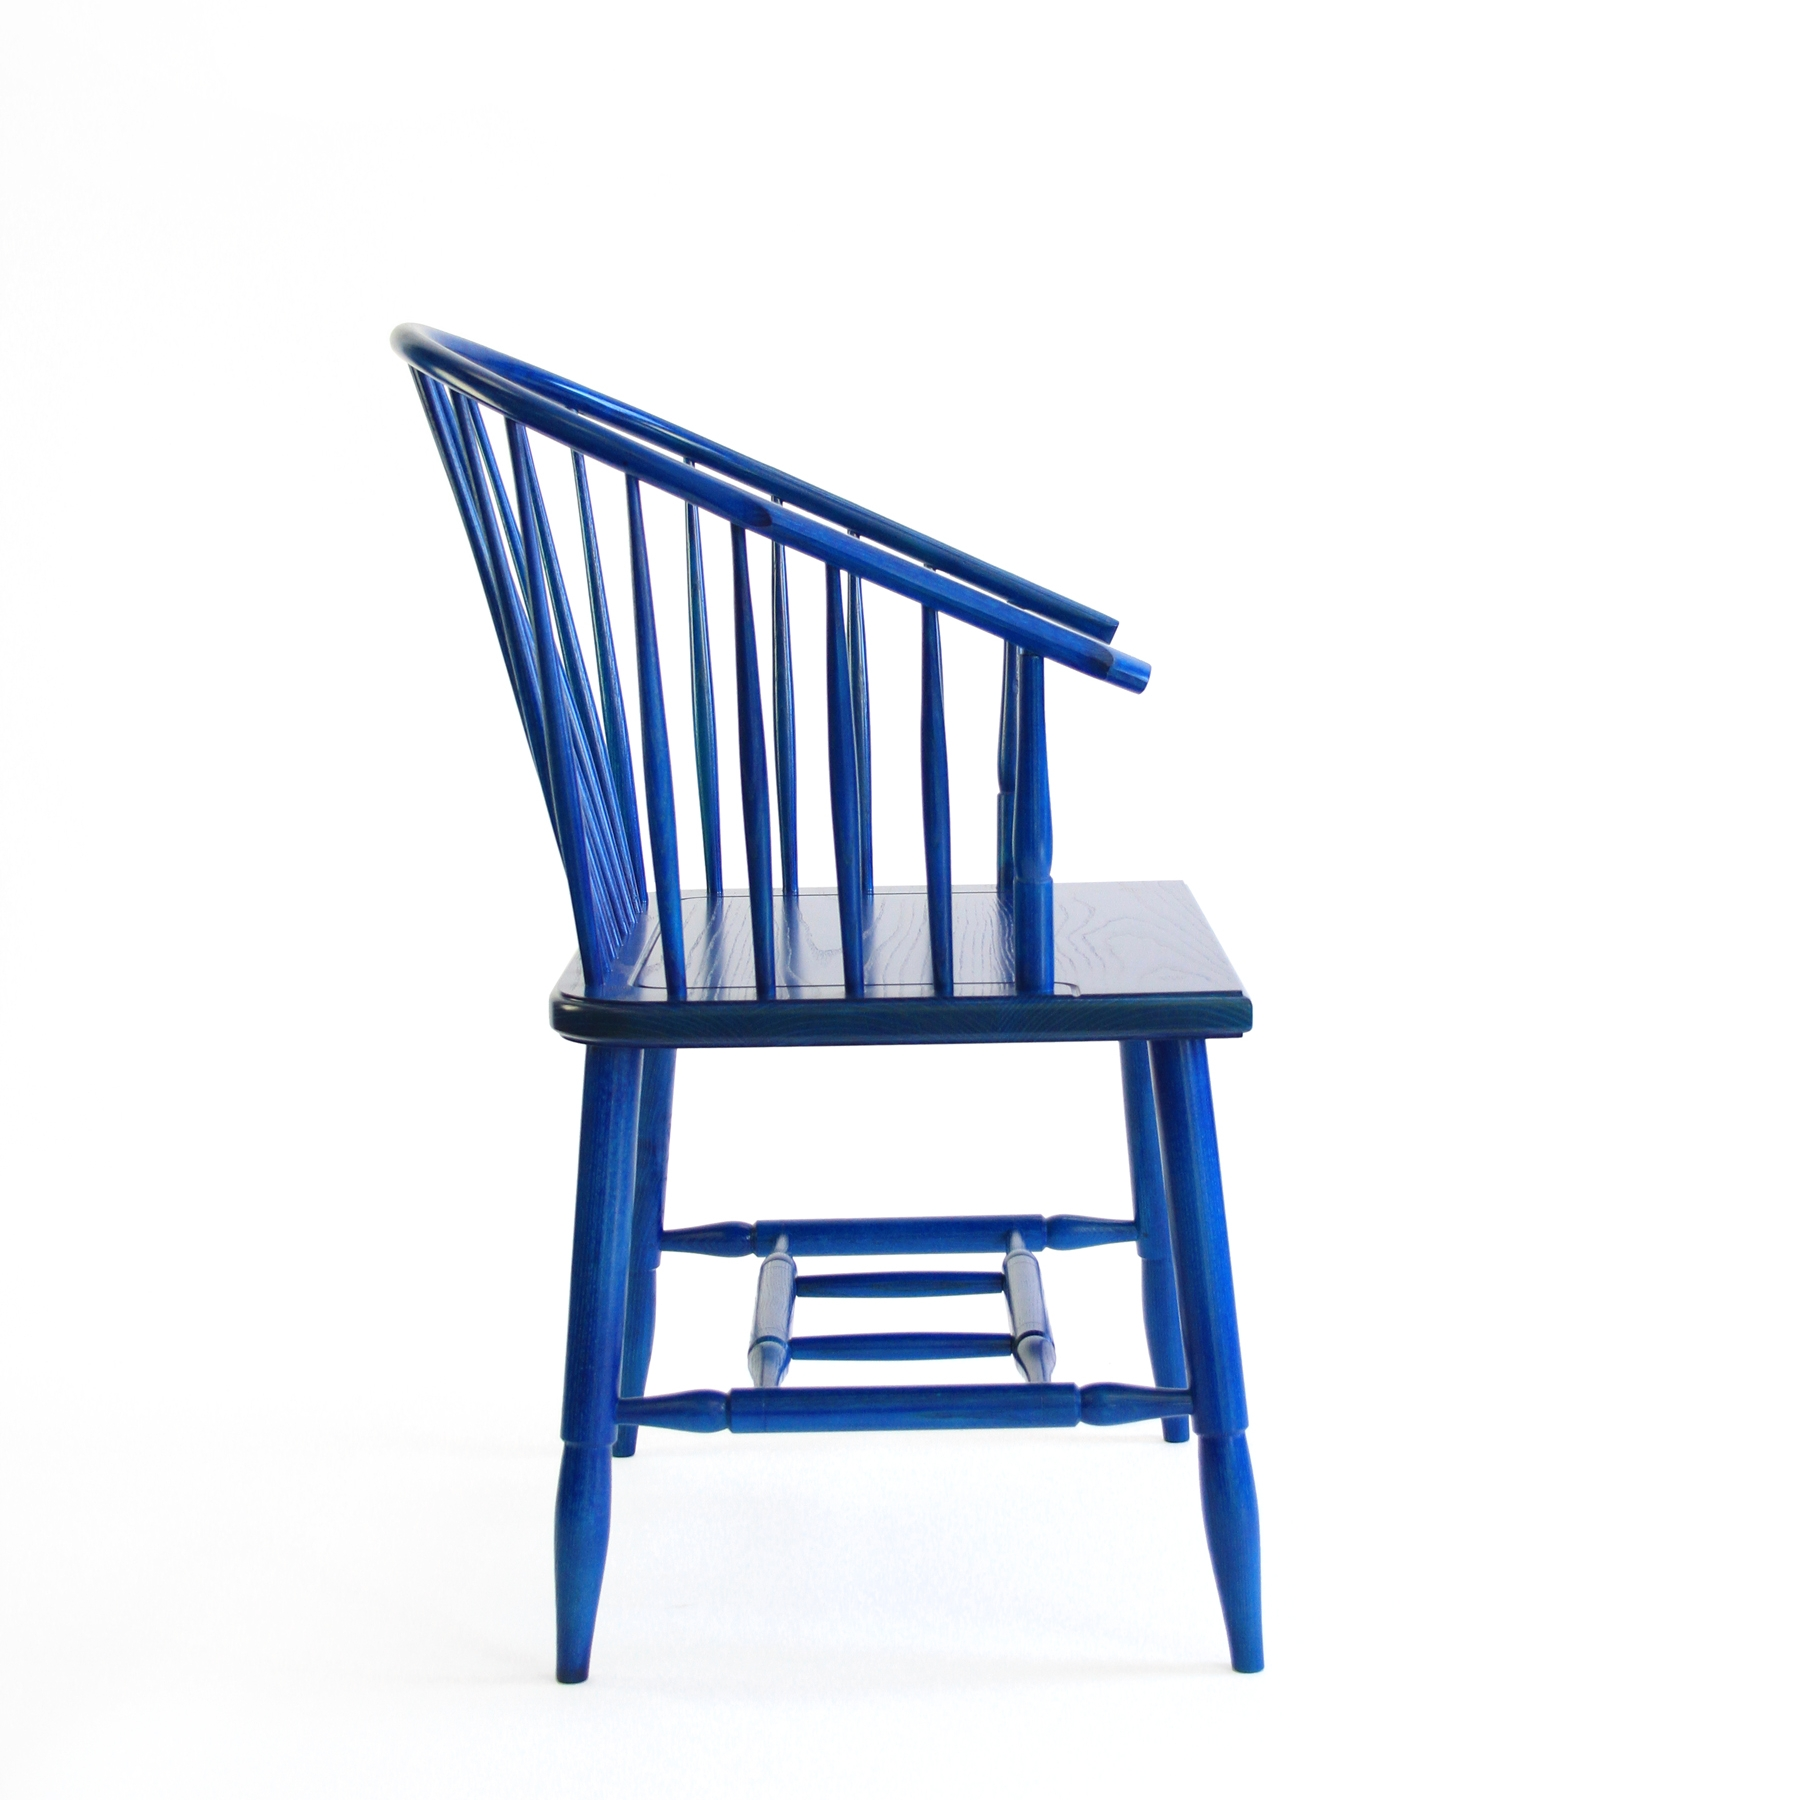 O&G Studio Horseshoe Chinese Armchair Windsor Contemporary Side Dining Chair  Modern Andrew Mau Designed Design Interior Braced Seating Maple Delft Blue Stained Stain